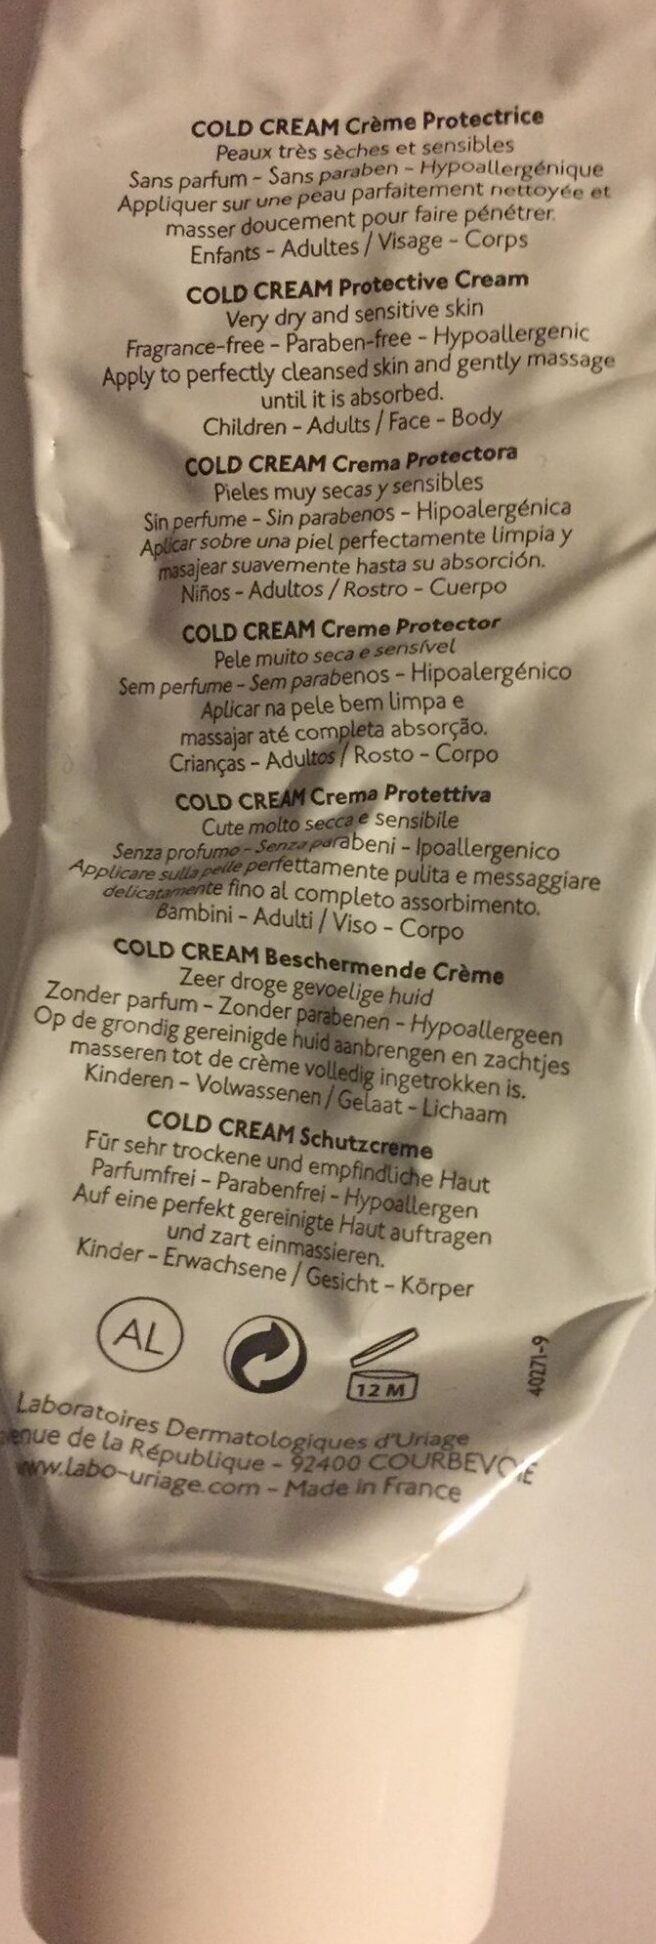 Cold Cream - crème protectrice - Ingredients